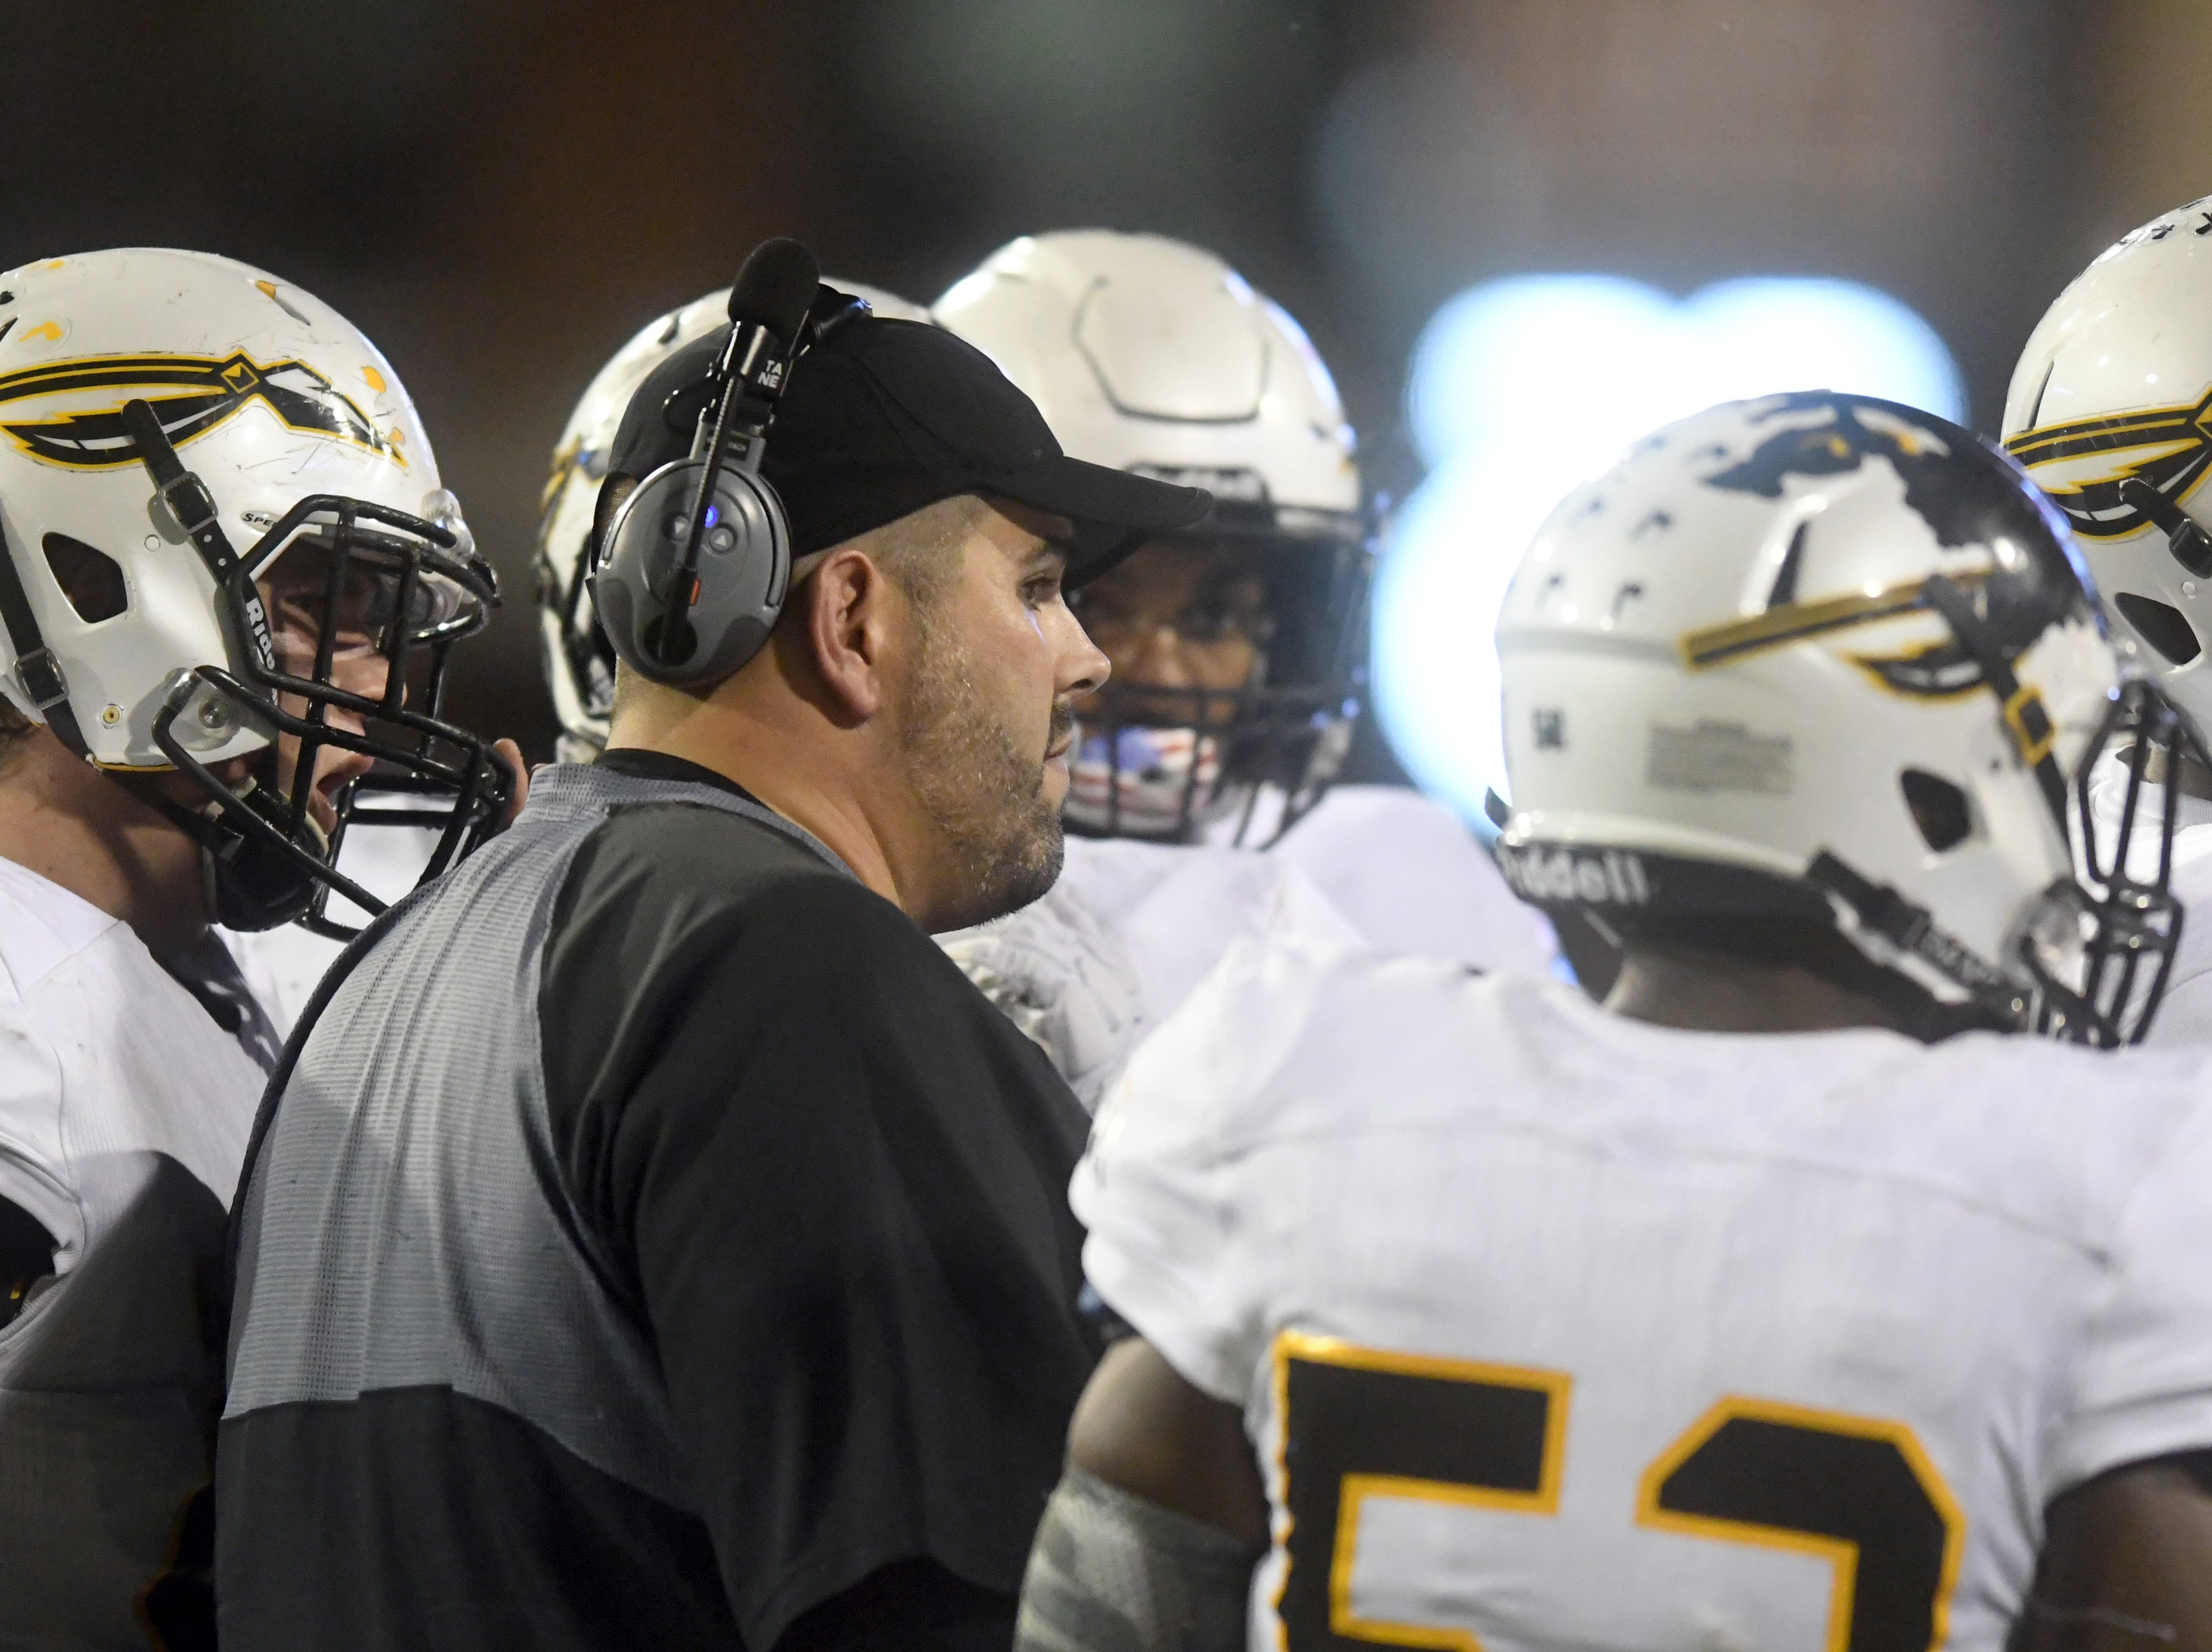 Oak Grove head coach  Drew Causey speaks with his players in the 6A state championship game against Horn Lake at M.M. Roberts Stadium in Hattiesburg on Friday, November 30, 2018.